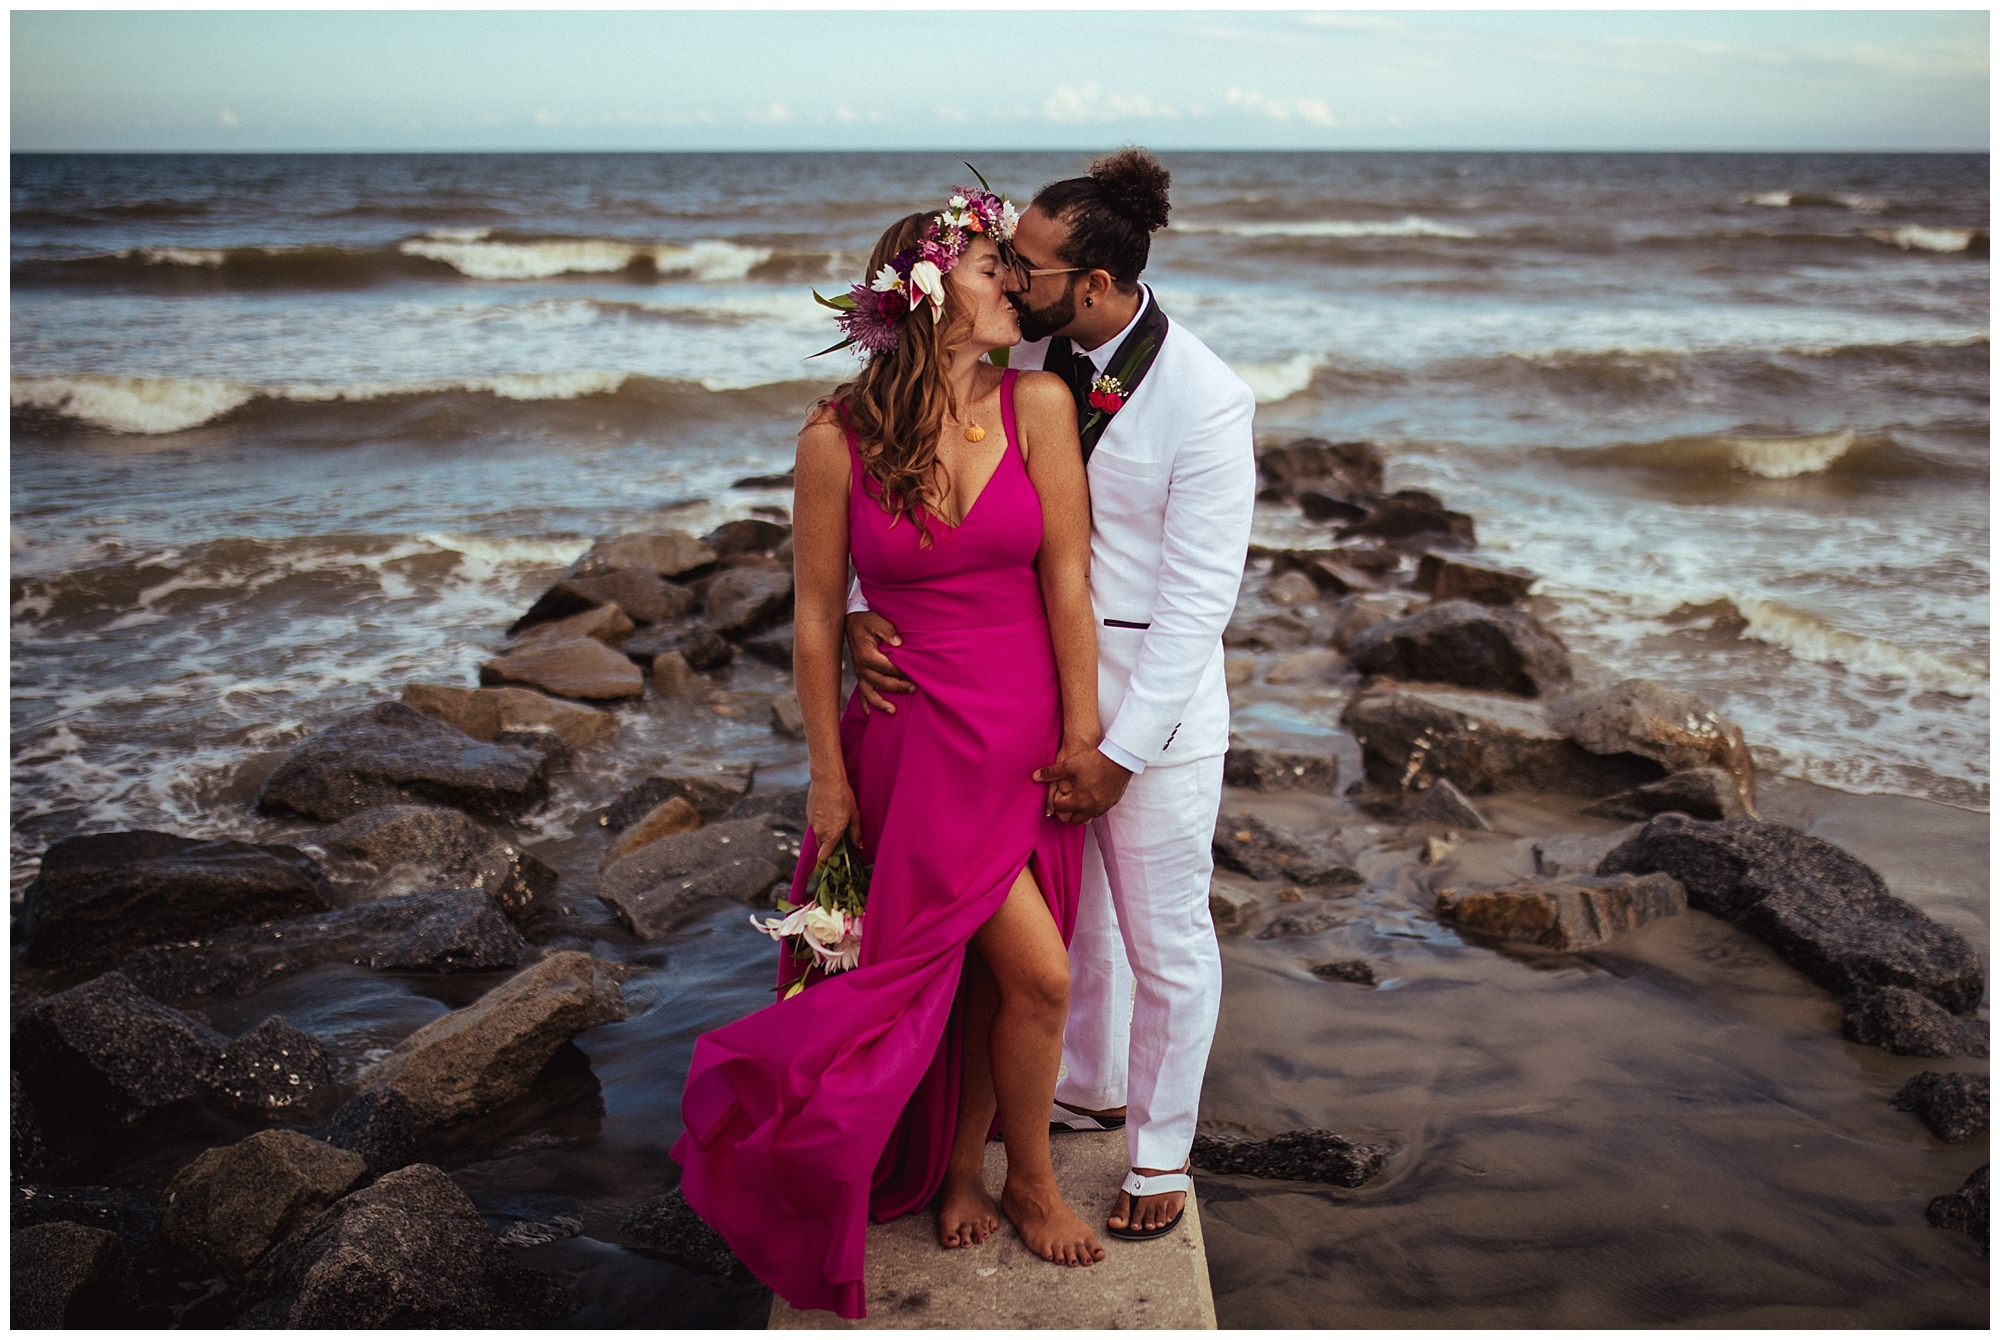 unique-beach-wedding17.jpg